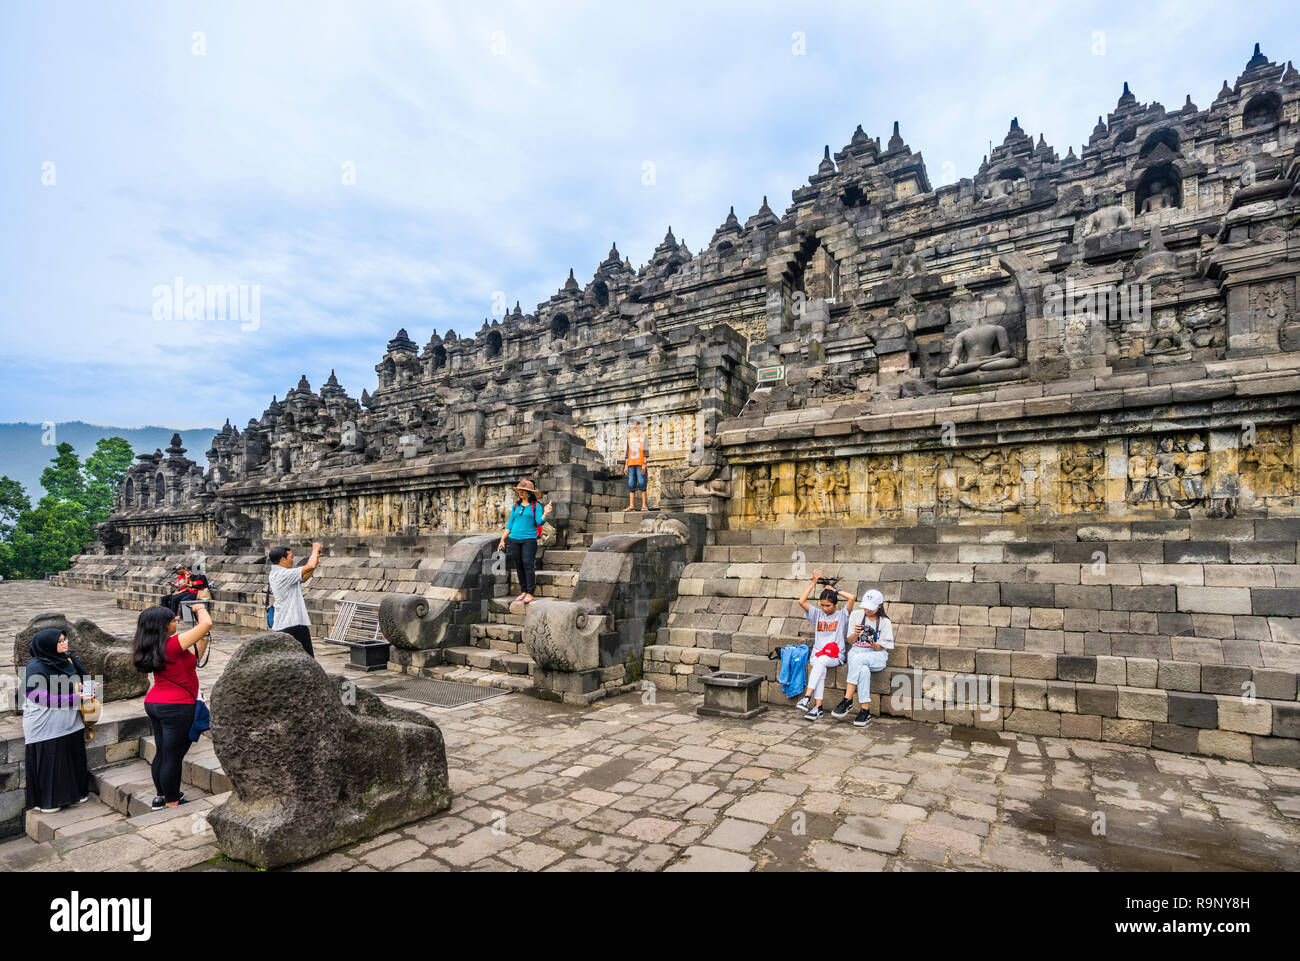 visitors at the ascent to the mandala step pyramid of 9th century Borobudur Buddhist temple, Central Java, Indonesia - Stock Image